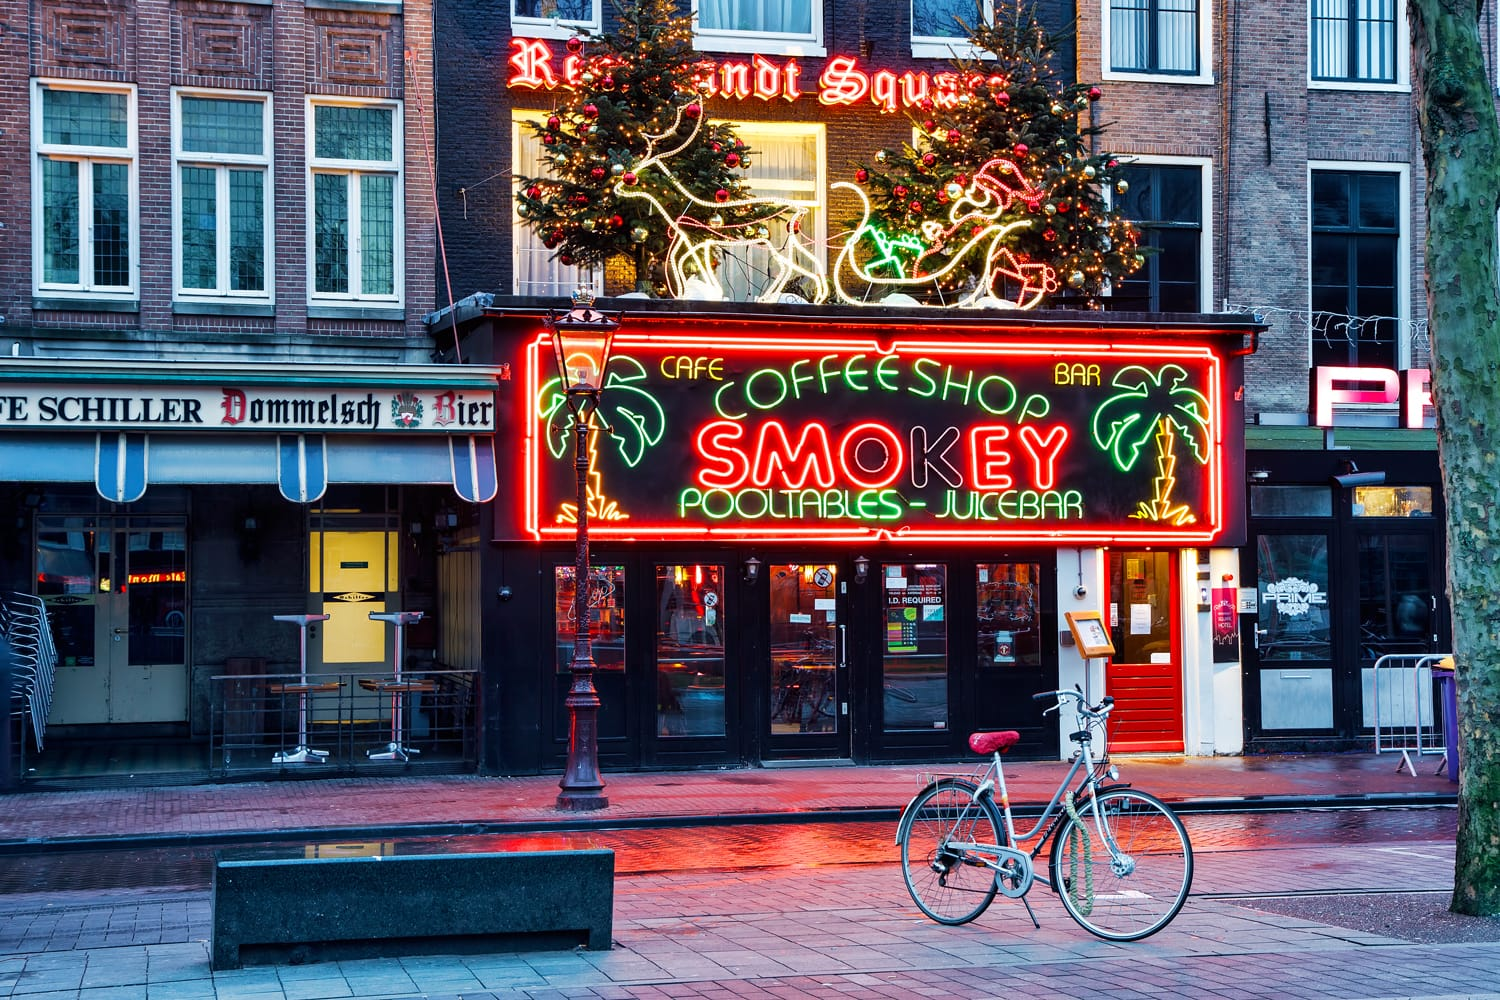 Coffeeshop Smokey is a cannabis coffee shop located on the biggest square in Amsterdam, Rembrandt Square.